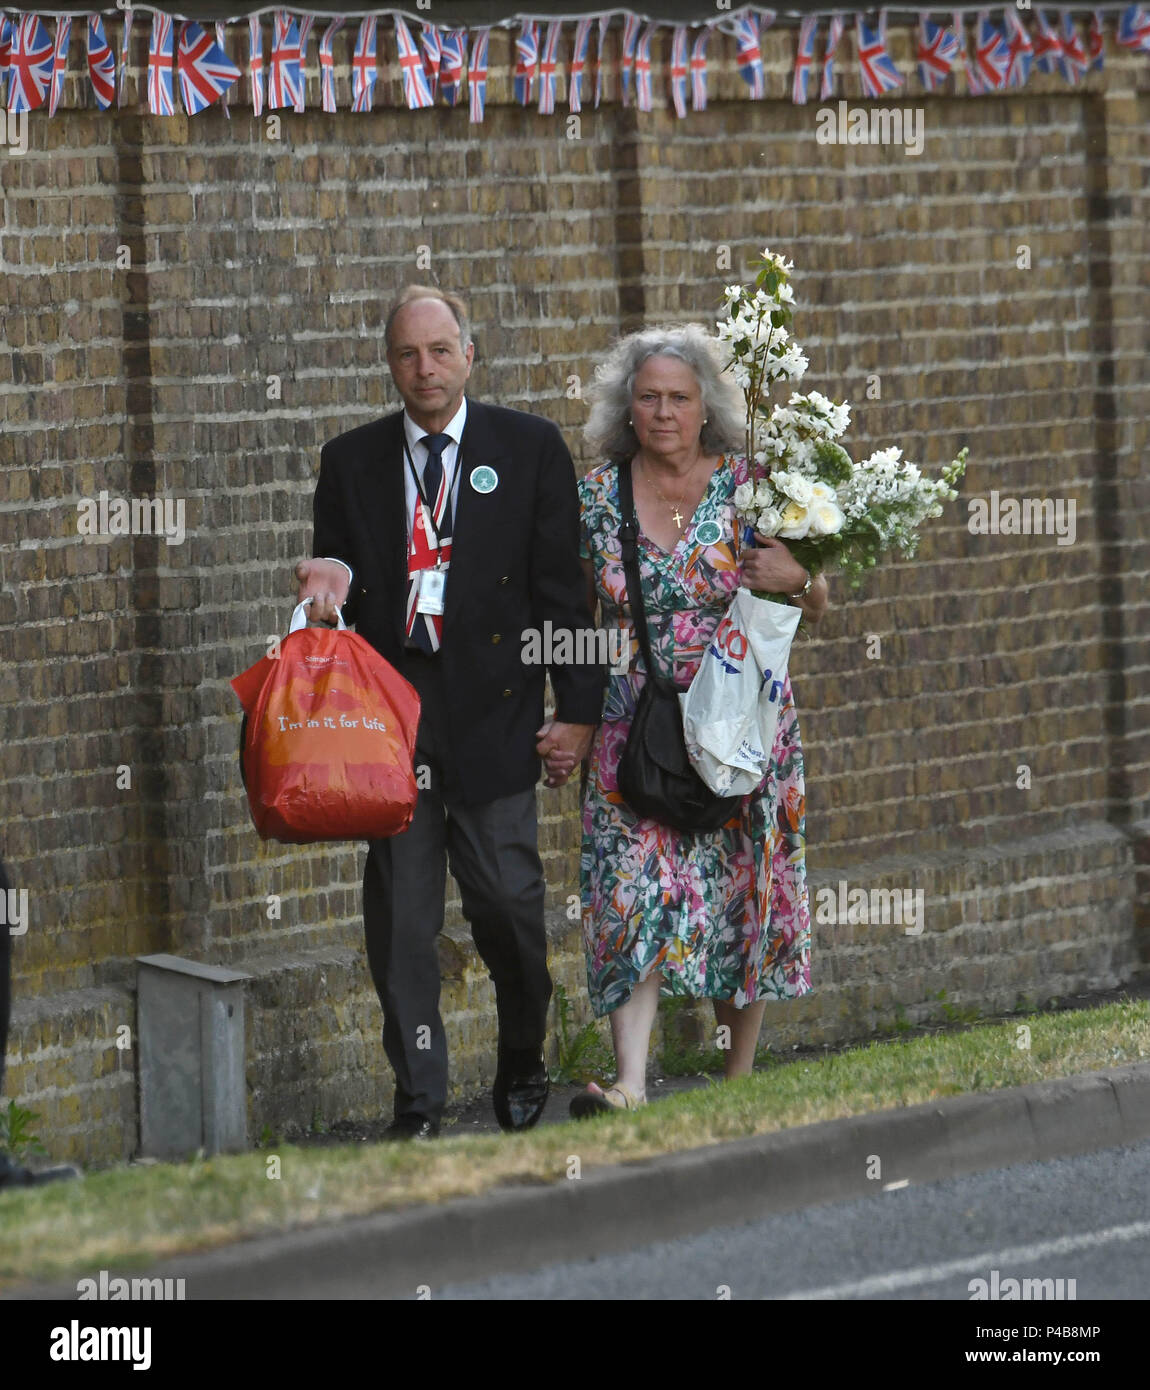 guests attending the wedding reception of prince harry and meghan markle featuring guests where datchett berkshire united kingdom when 19 may 2018 credit steve finn wenn stock photo alamy https www alamy com guests attending the wedding reception of prince harry and meghan markle featuring guests where datchett berkshire united kingdom when 19 may 2018 credit steve finnwenn image209231366 html